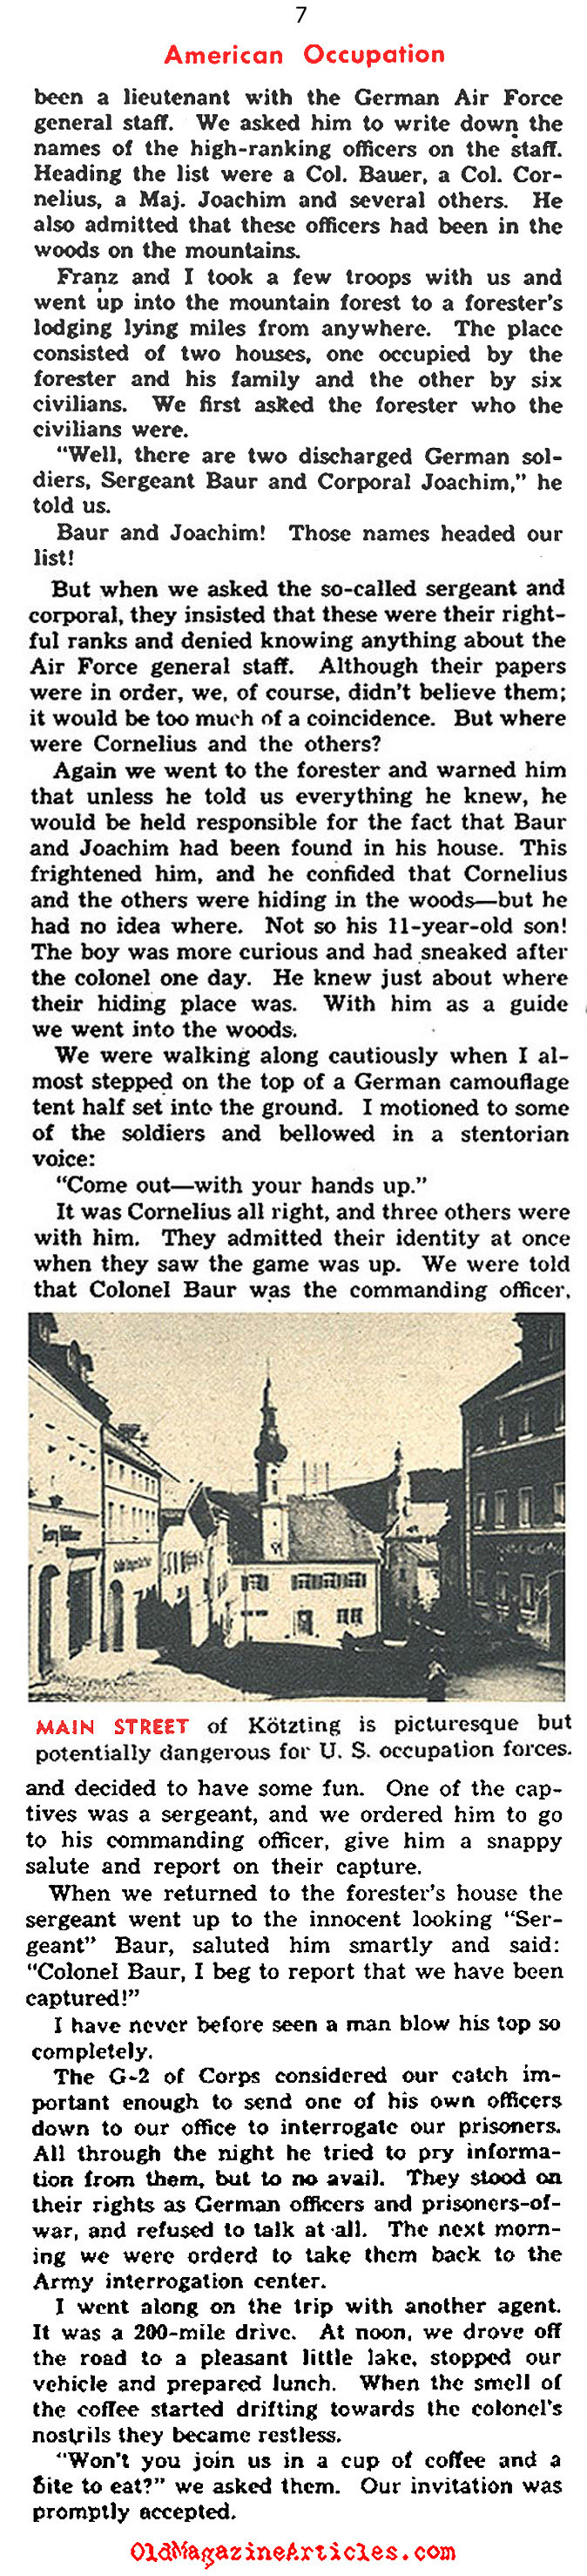 The Hunt in Occupied-Germany (Pic Magazine, 1946)